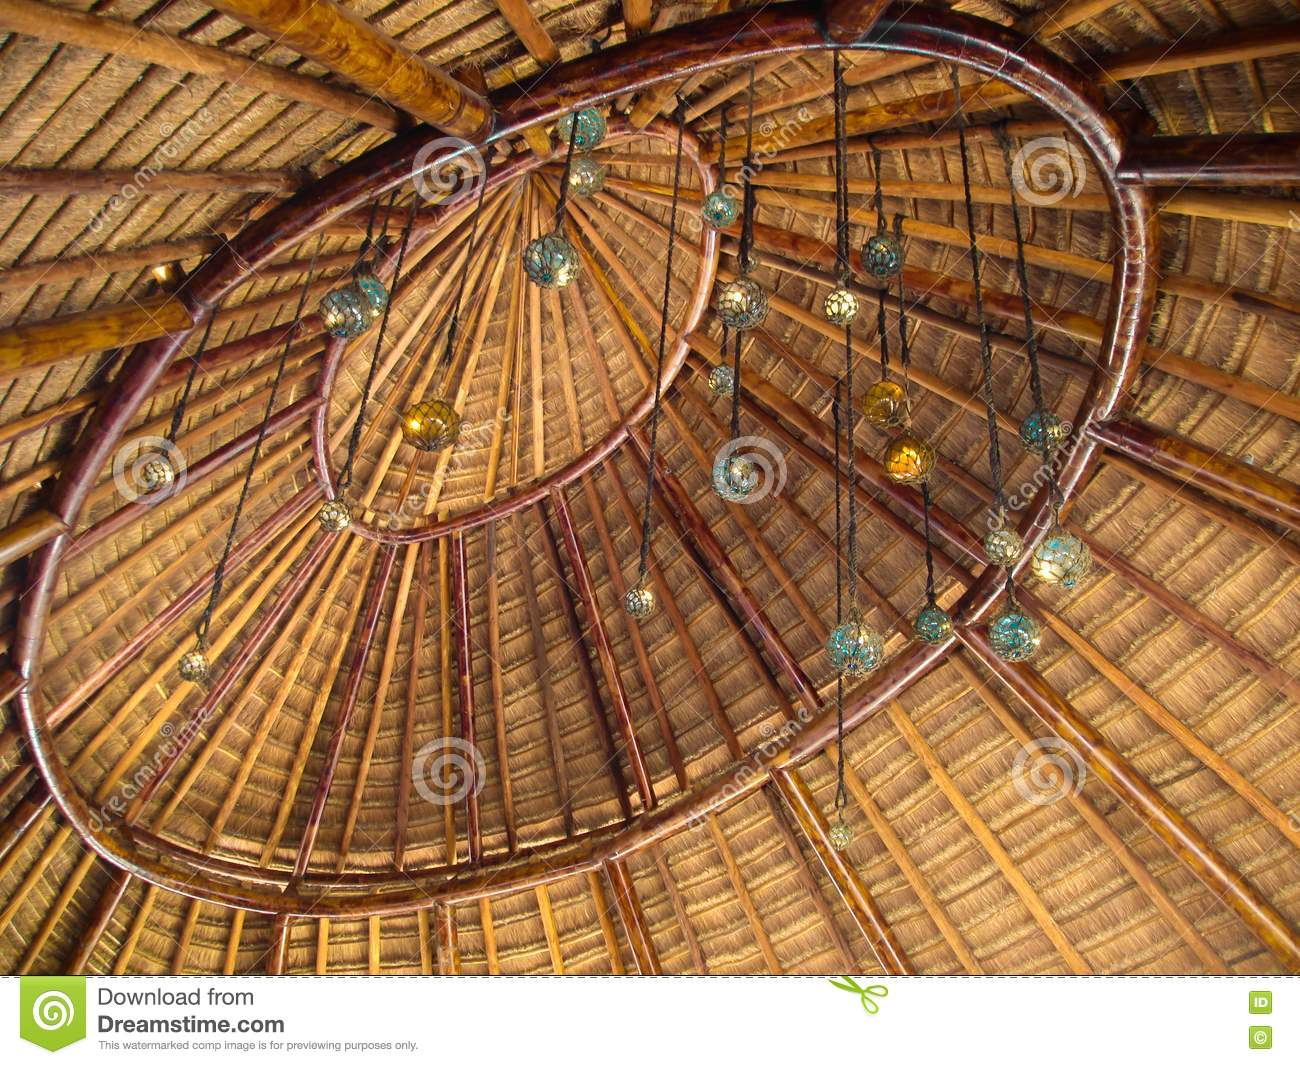 Palapa roof royalty free stock photo image 22558455 for Does new roof affect appraisal